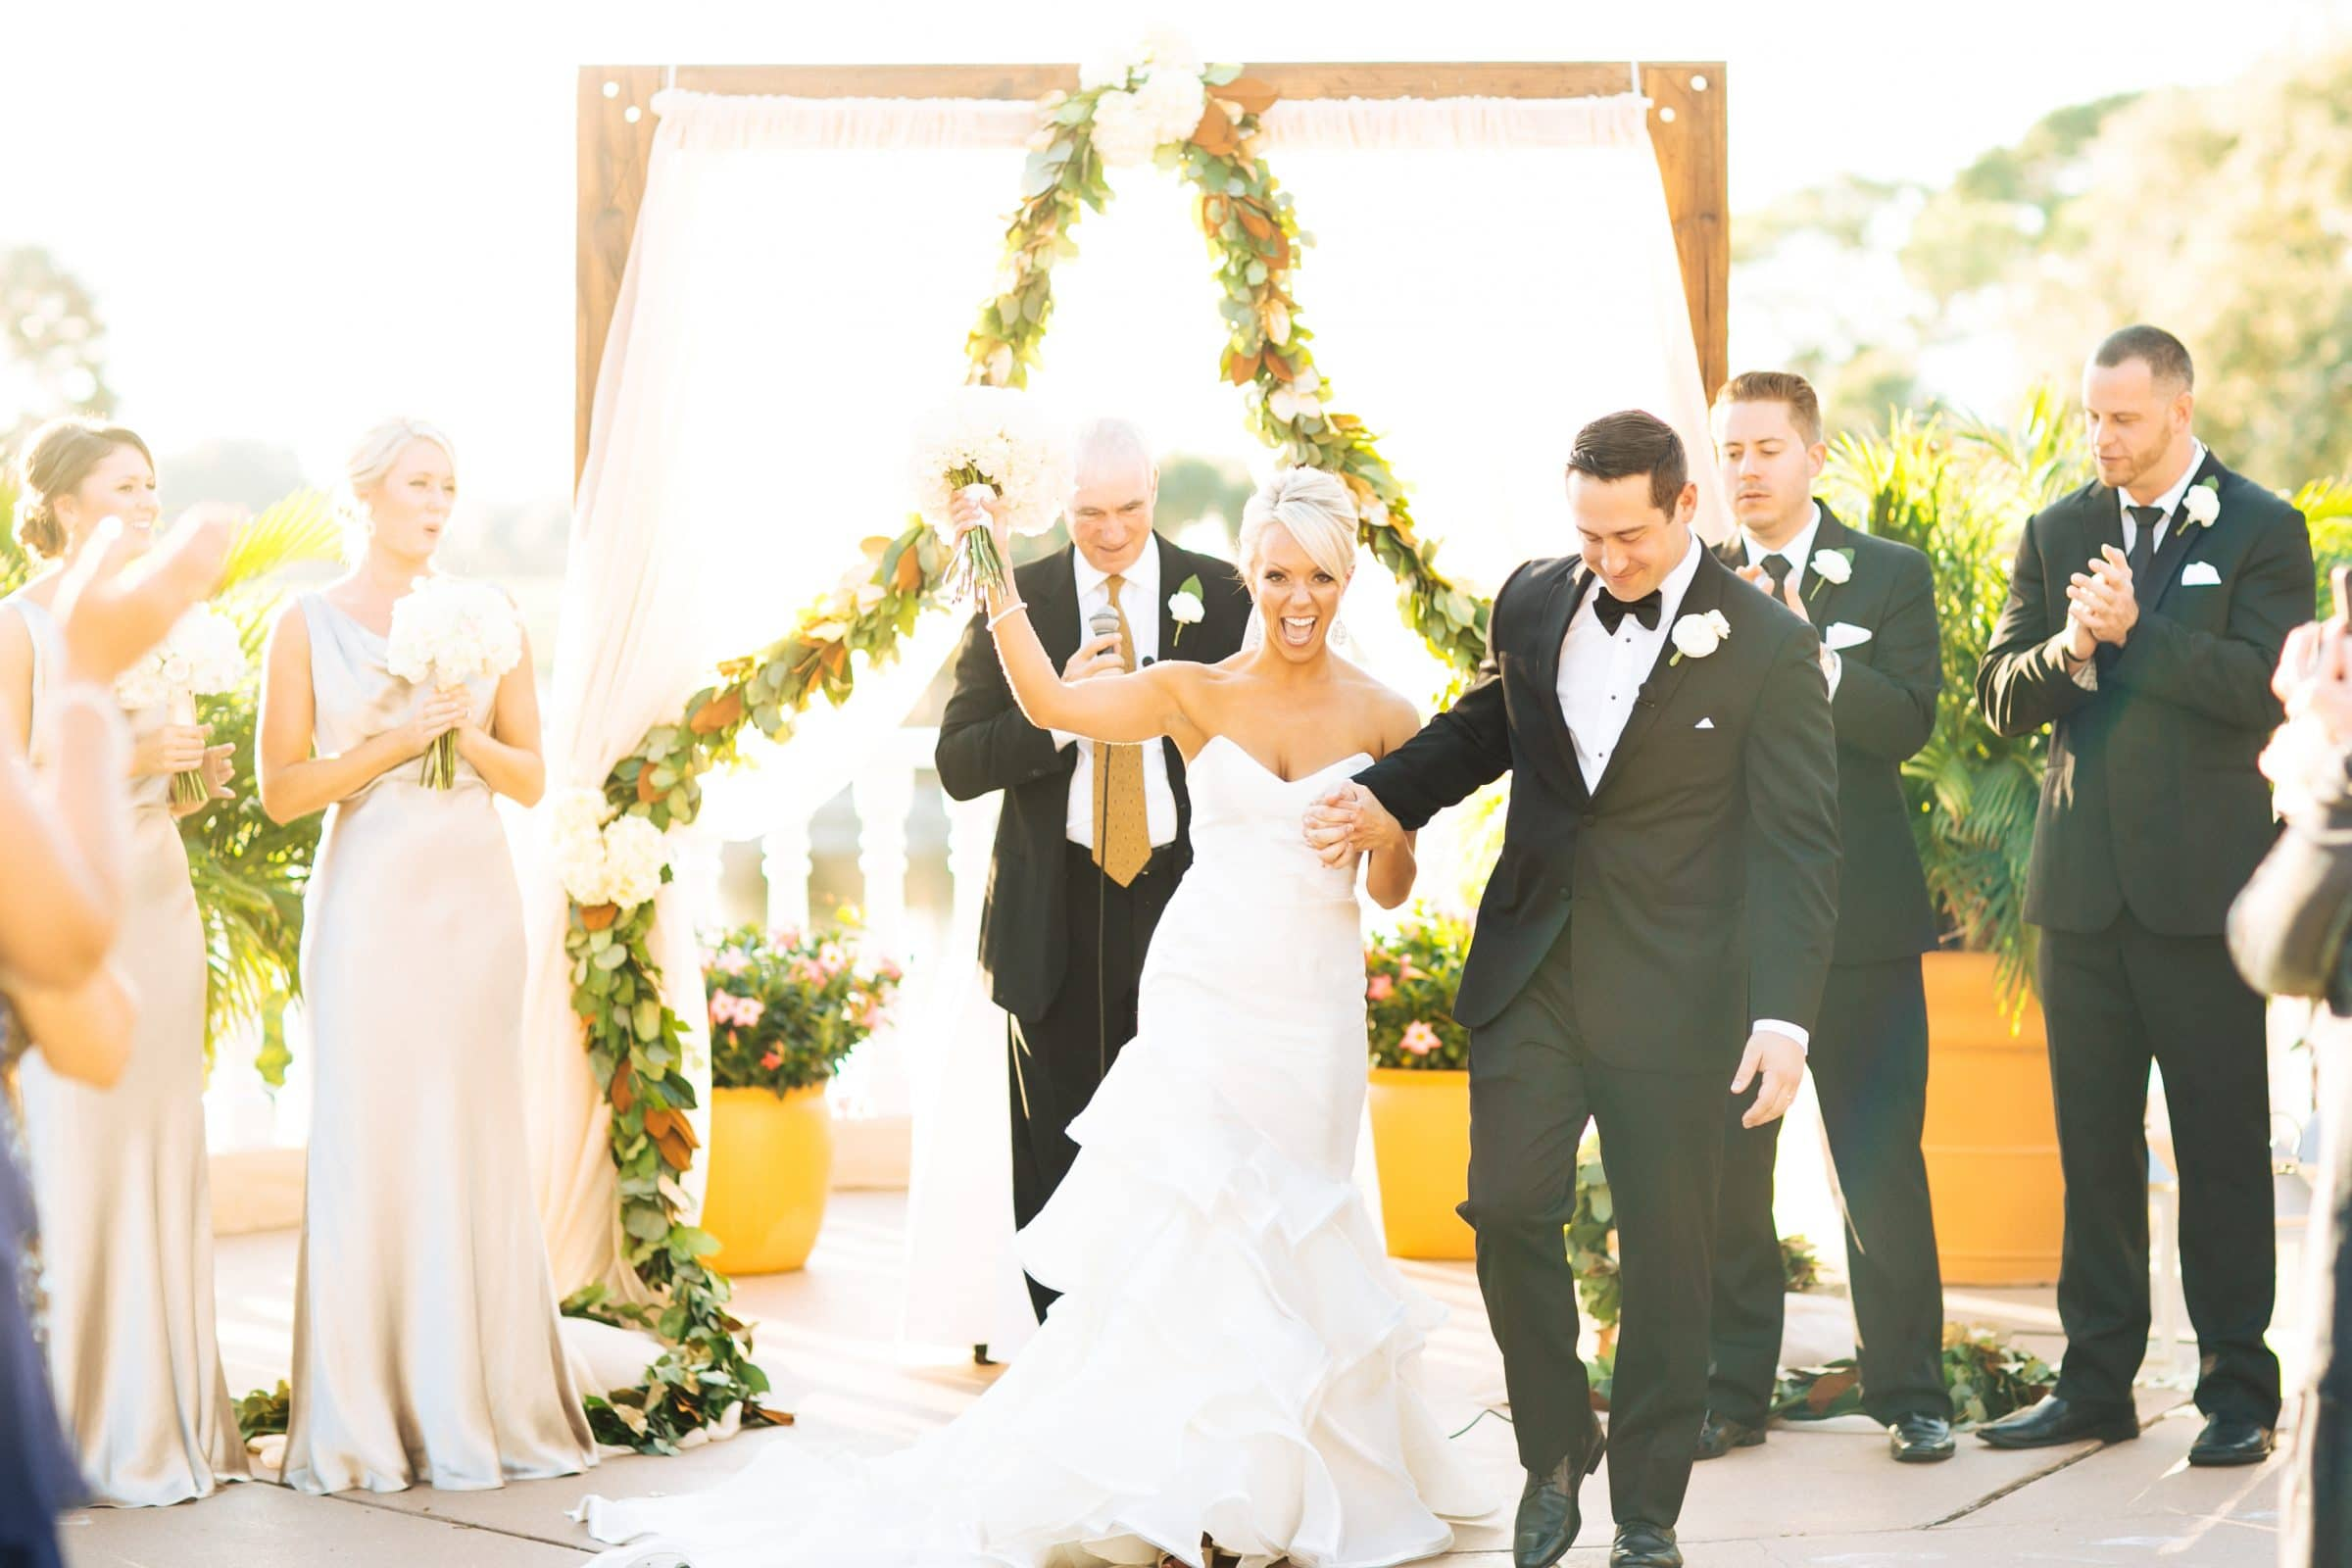 Bride cheering next to smiling groom after wedding ceremony